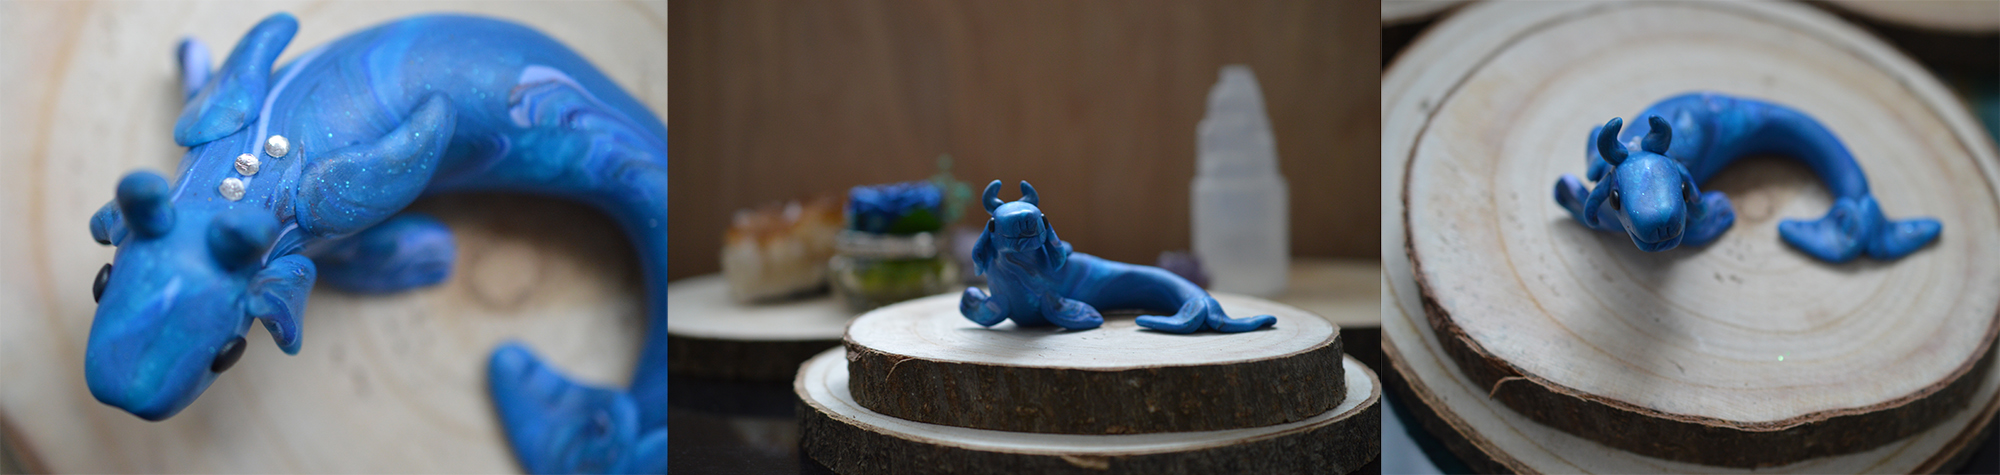 Blue Polymer Clay Dragon